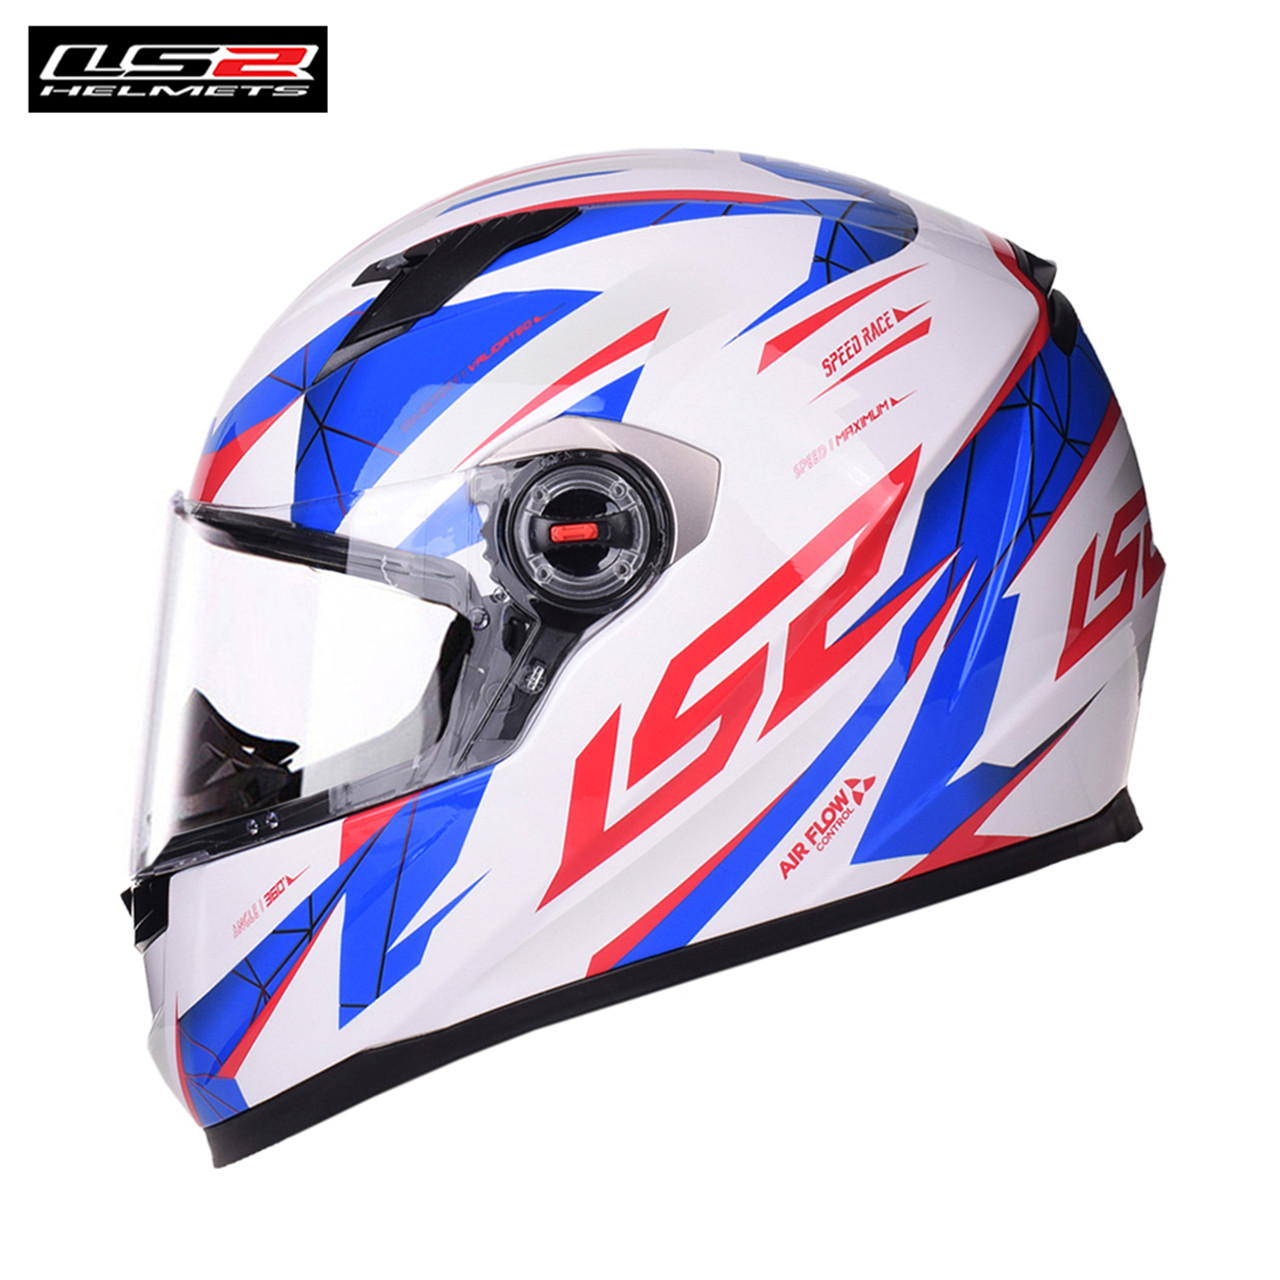 LS2 Helmets 2018 Motorcycle Full Face Racing Helmet Moto Cascos Capacete ls2 Barros Air Flow ls2 alex barros full face motorcycle helmet racing moto helmets isigqoko capacete casque moto ece approved no pump ff358 helmets